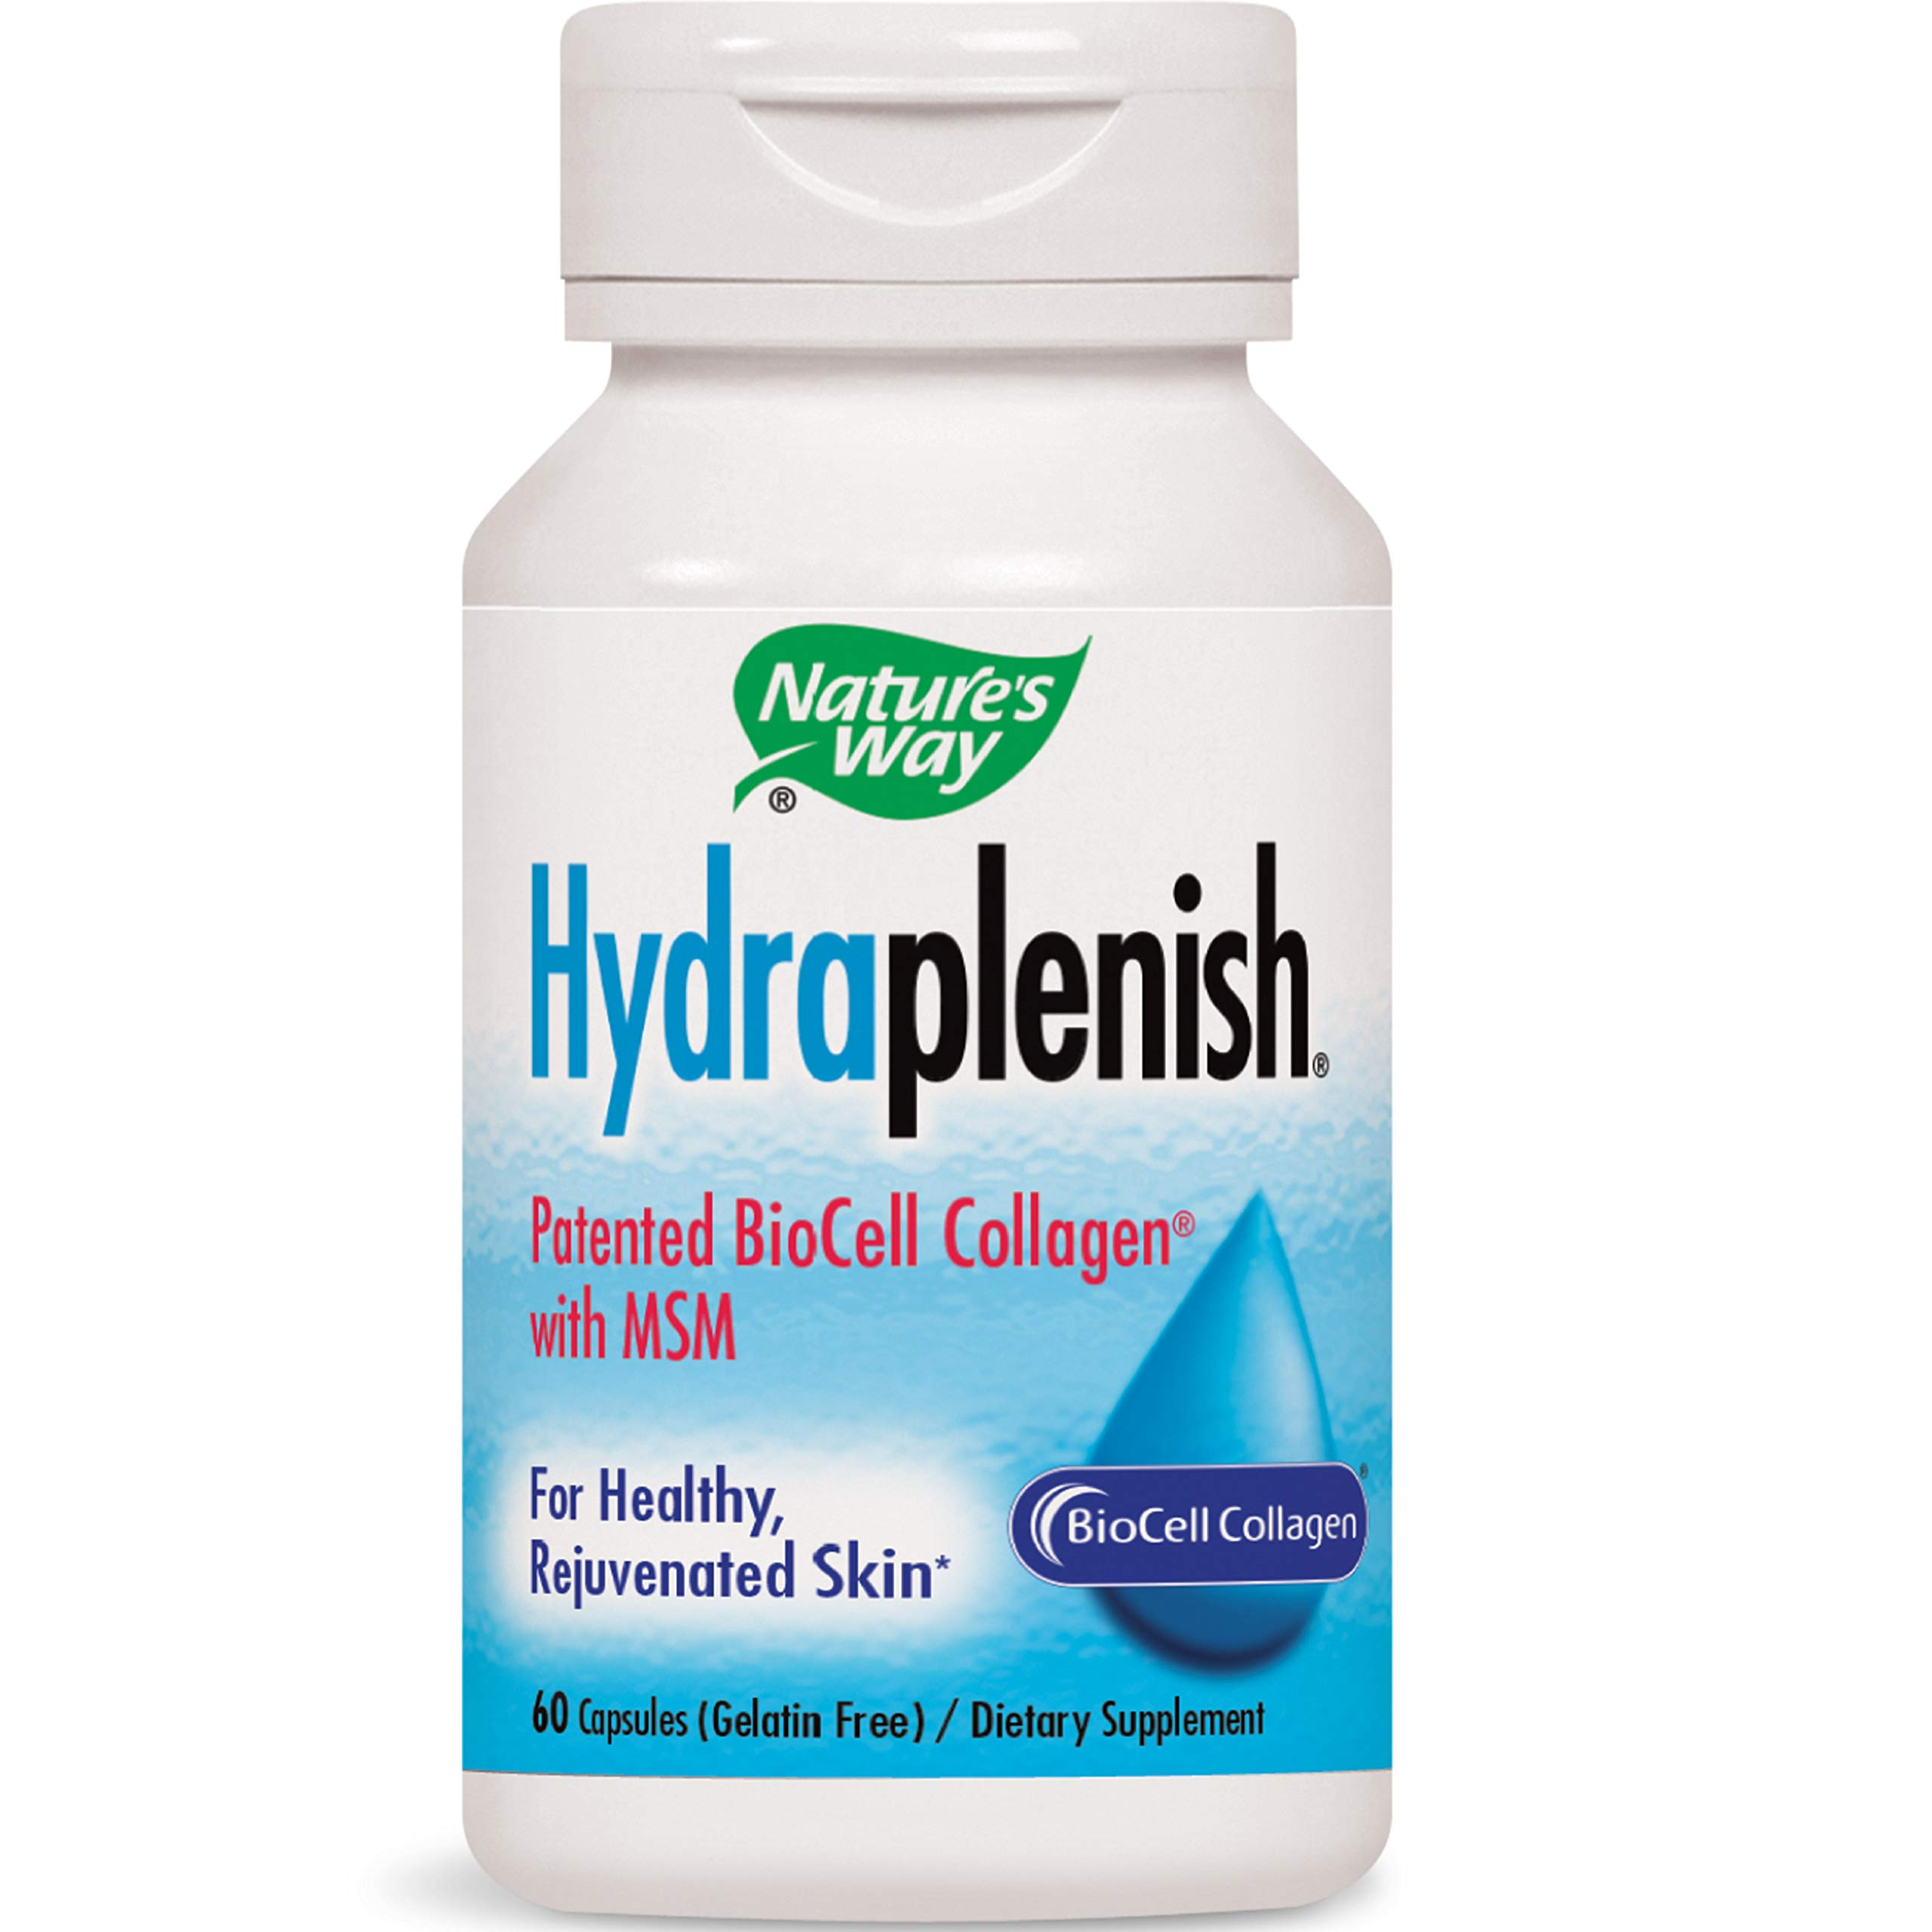 Nature's Way Hydraplenish Patented BioCell Collagen w/MSM, 60 Gelatin Free Capsules by Nature's Way